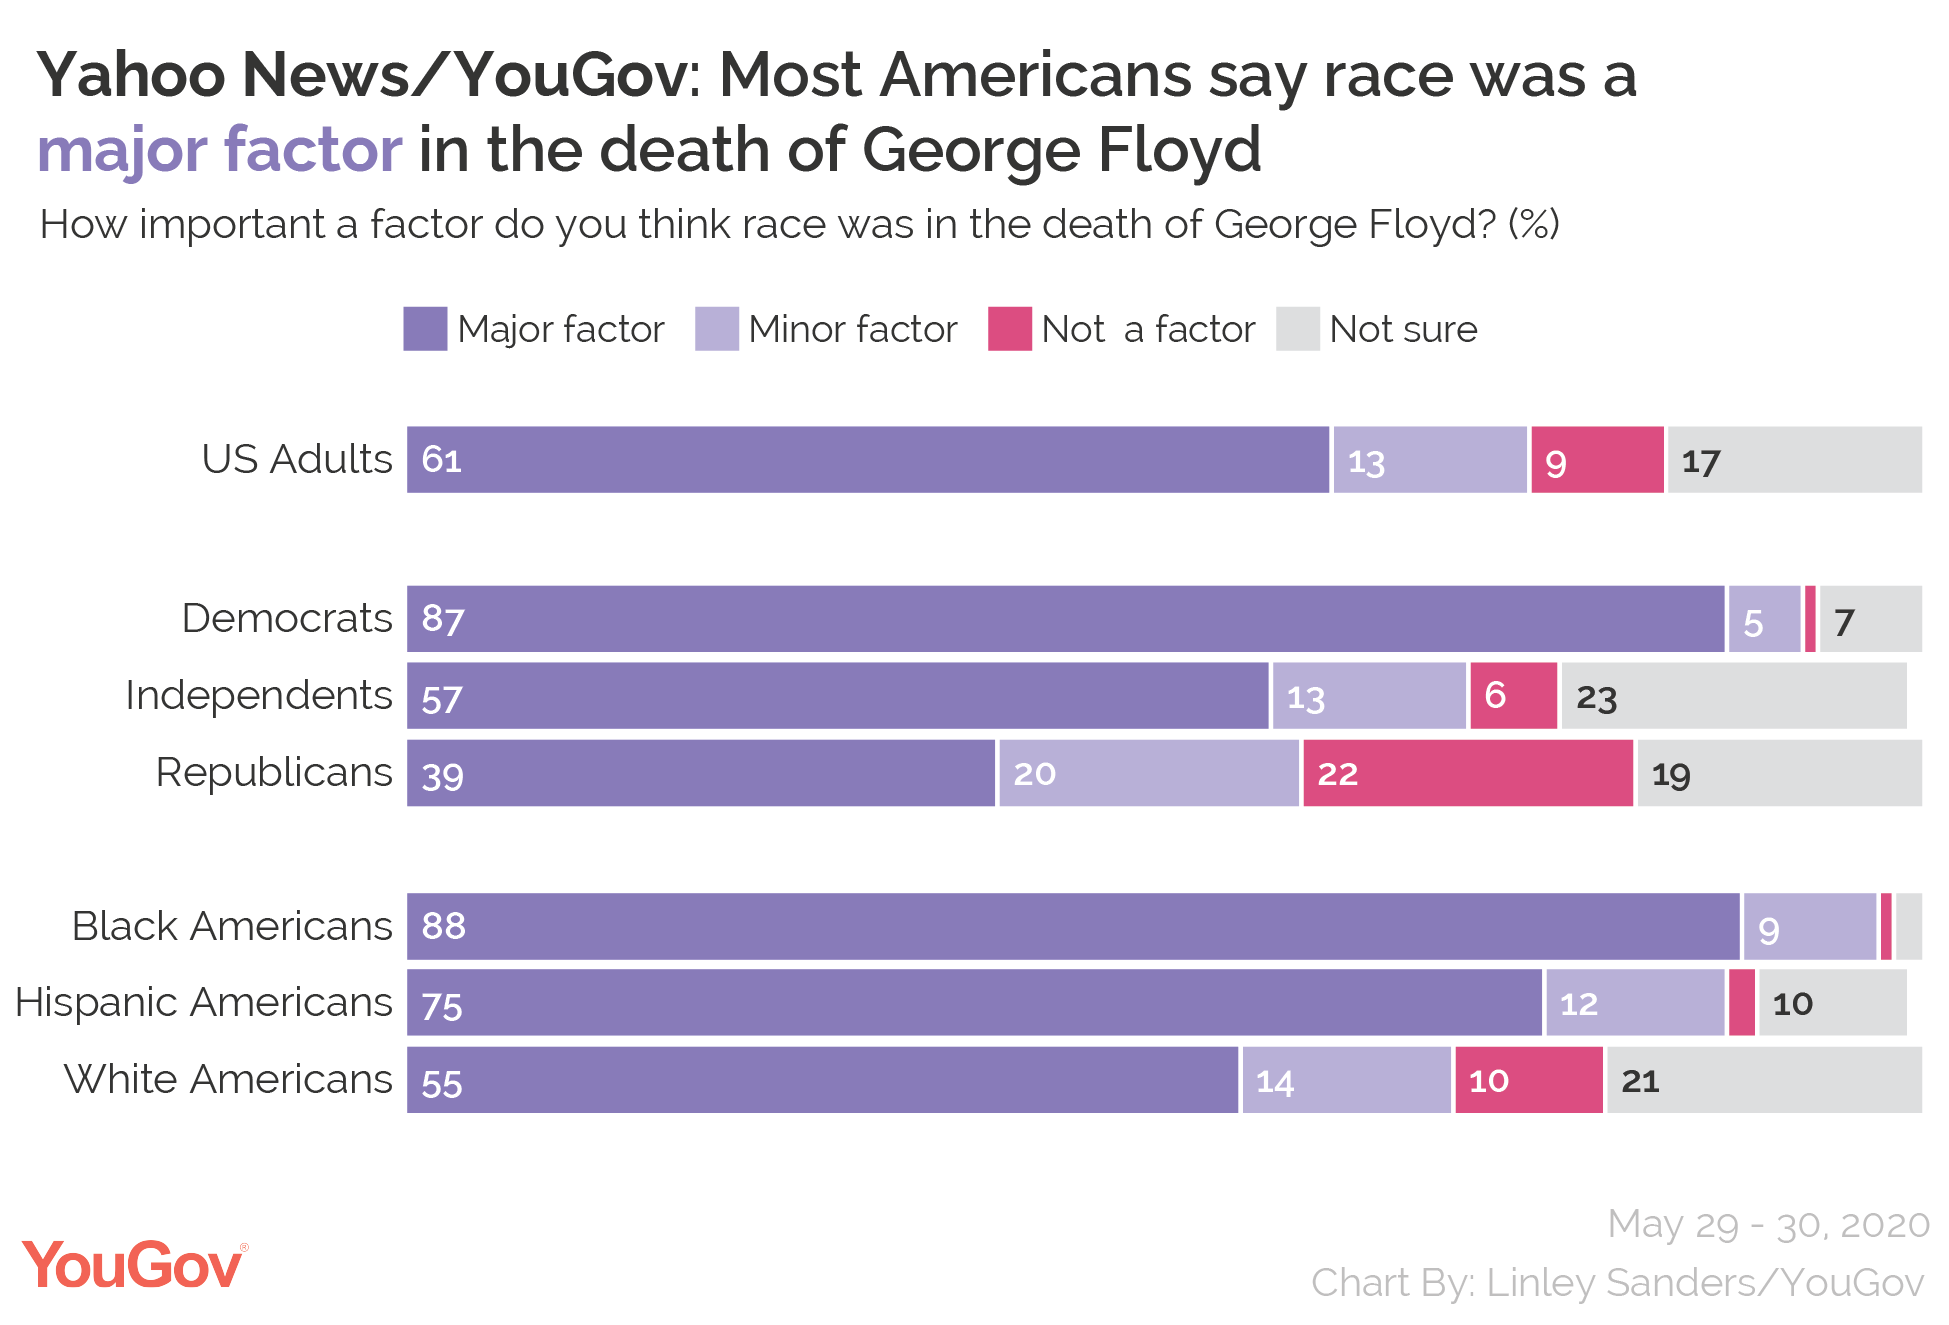 Yahoo News/YouGov: Most Americans say race as a major factor in the death of George Floyd